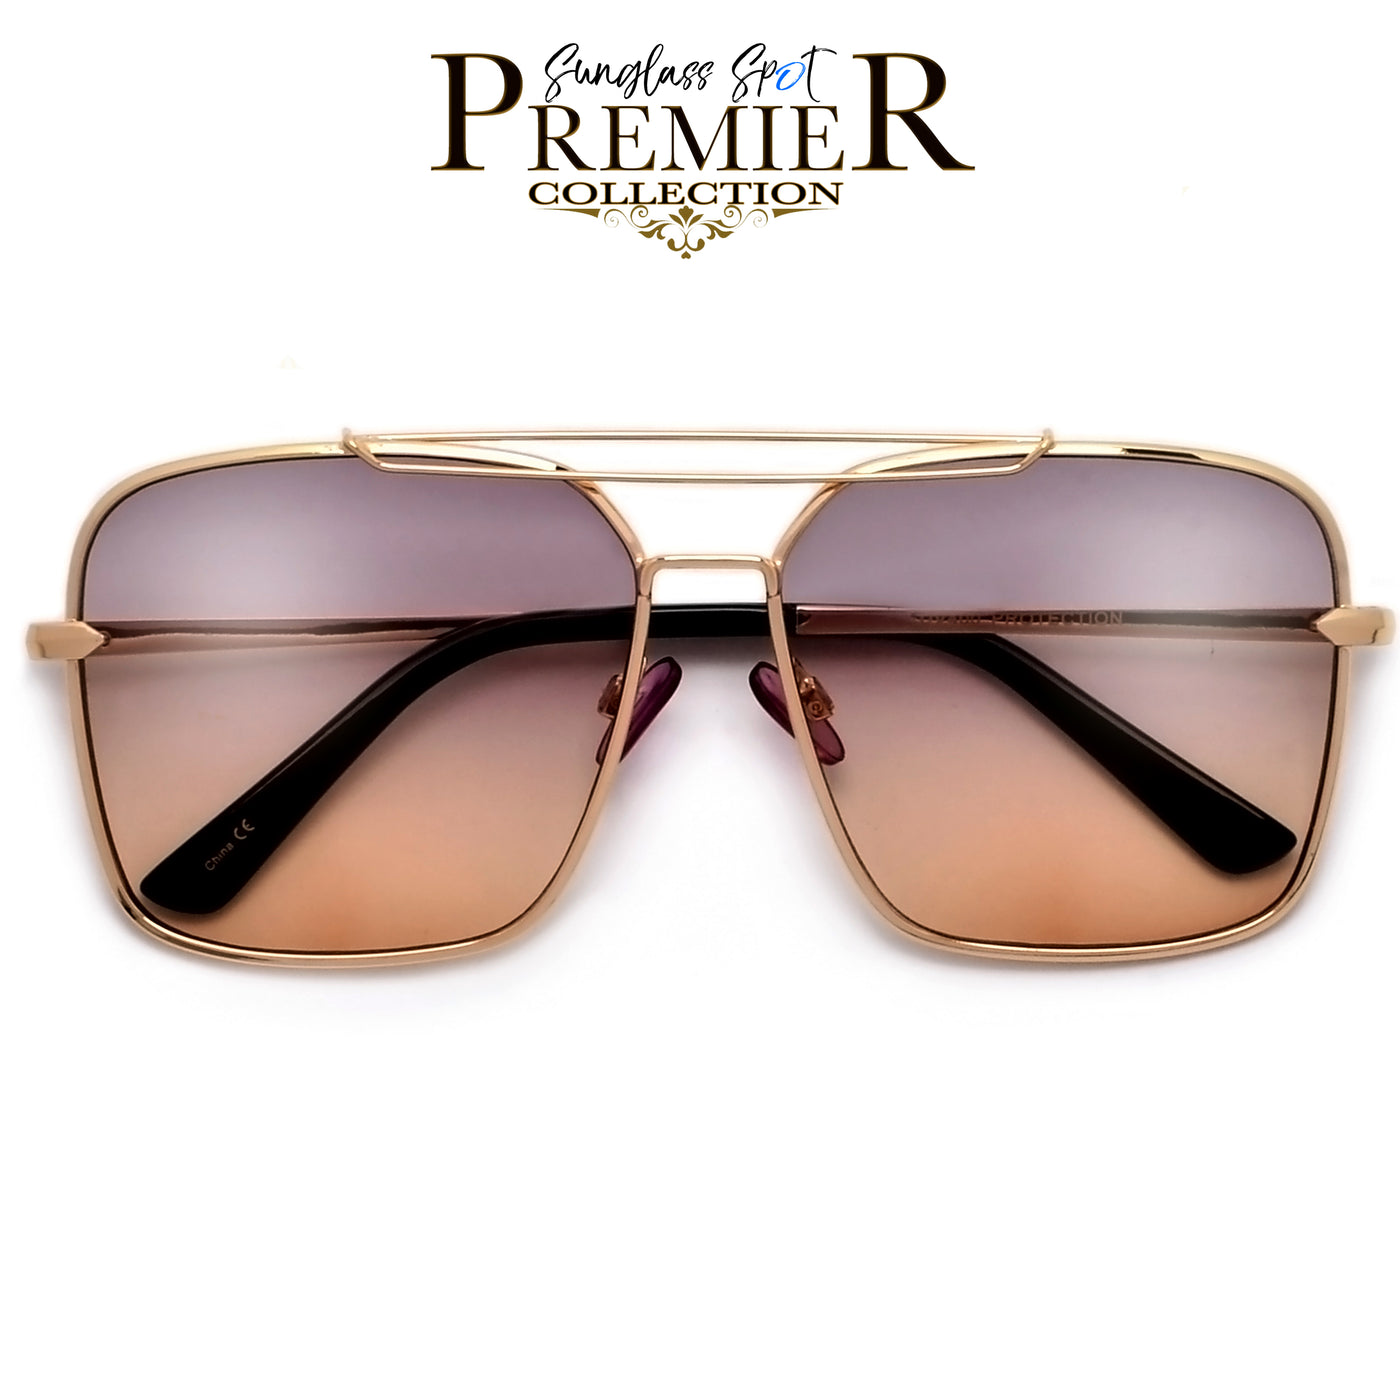 aab6a5eeef PREMIER COLLECTION-OVERSIZE SLEEK MODERN DOUBLE BROW BAR AVIATOR SUNGLASSES